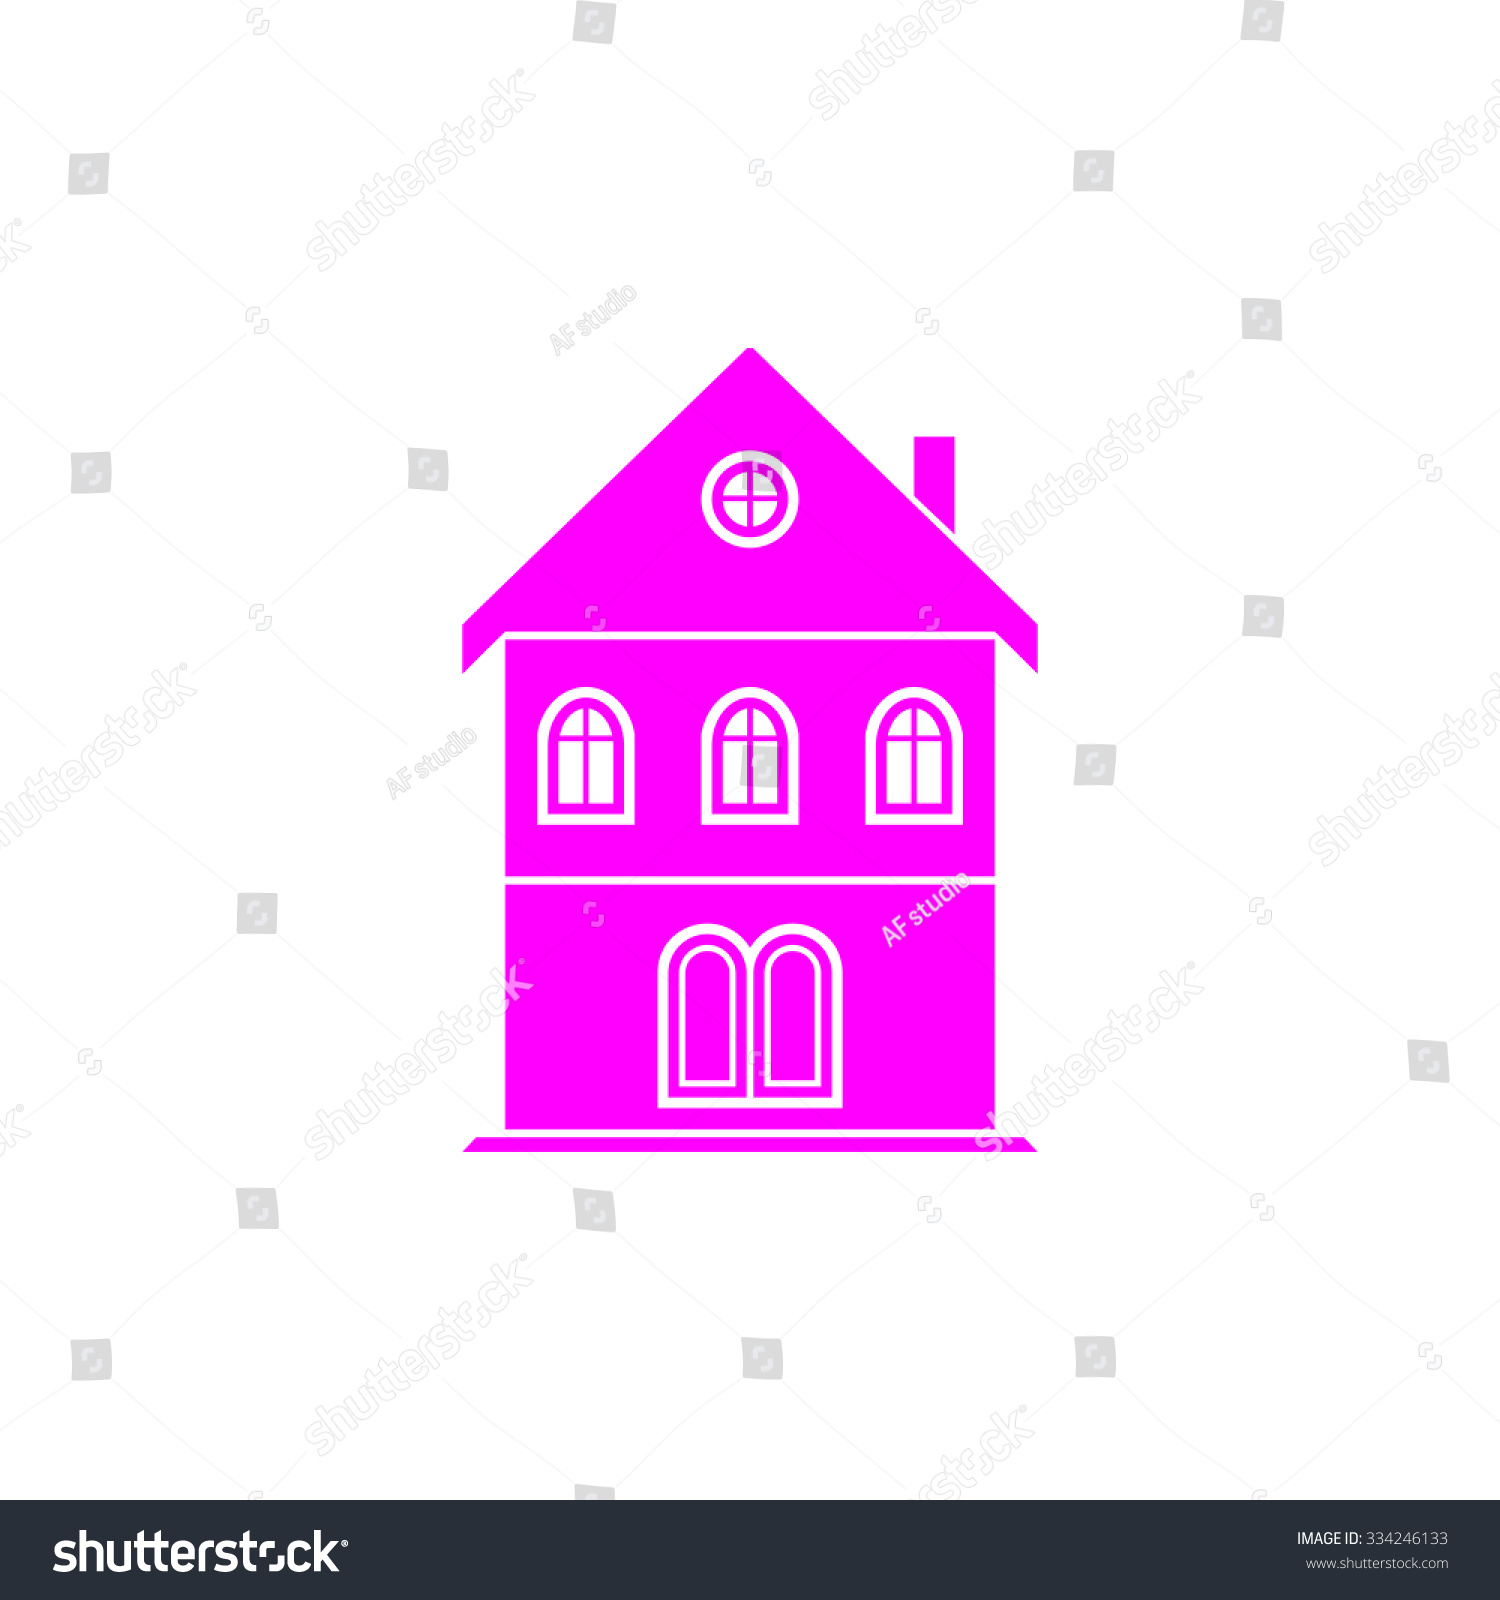 Simple Old House Pink Flat Icon Stock Vector 334246133 - Shutterstock